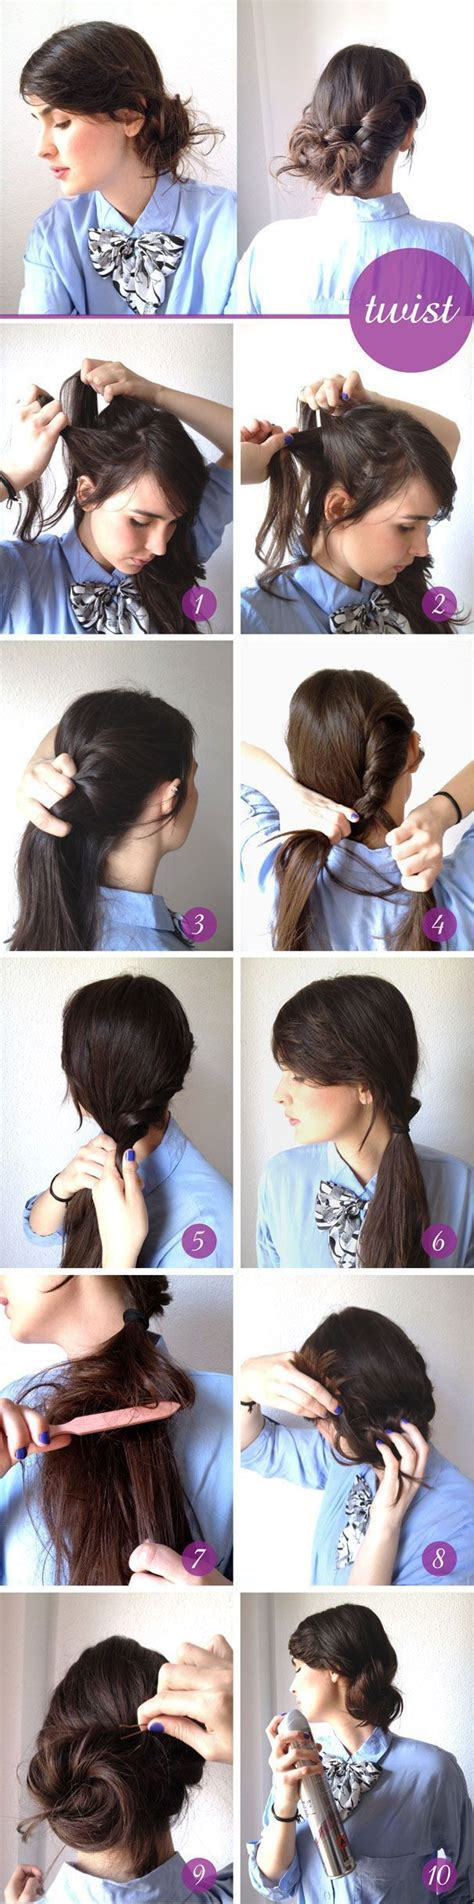 hairstyles you can do at home for black hair creative hairstyles that you can easily do at home 27